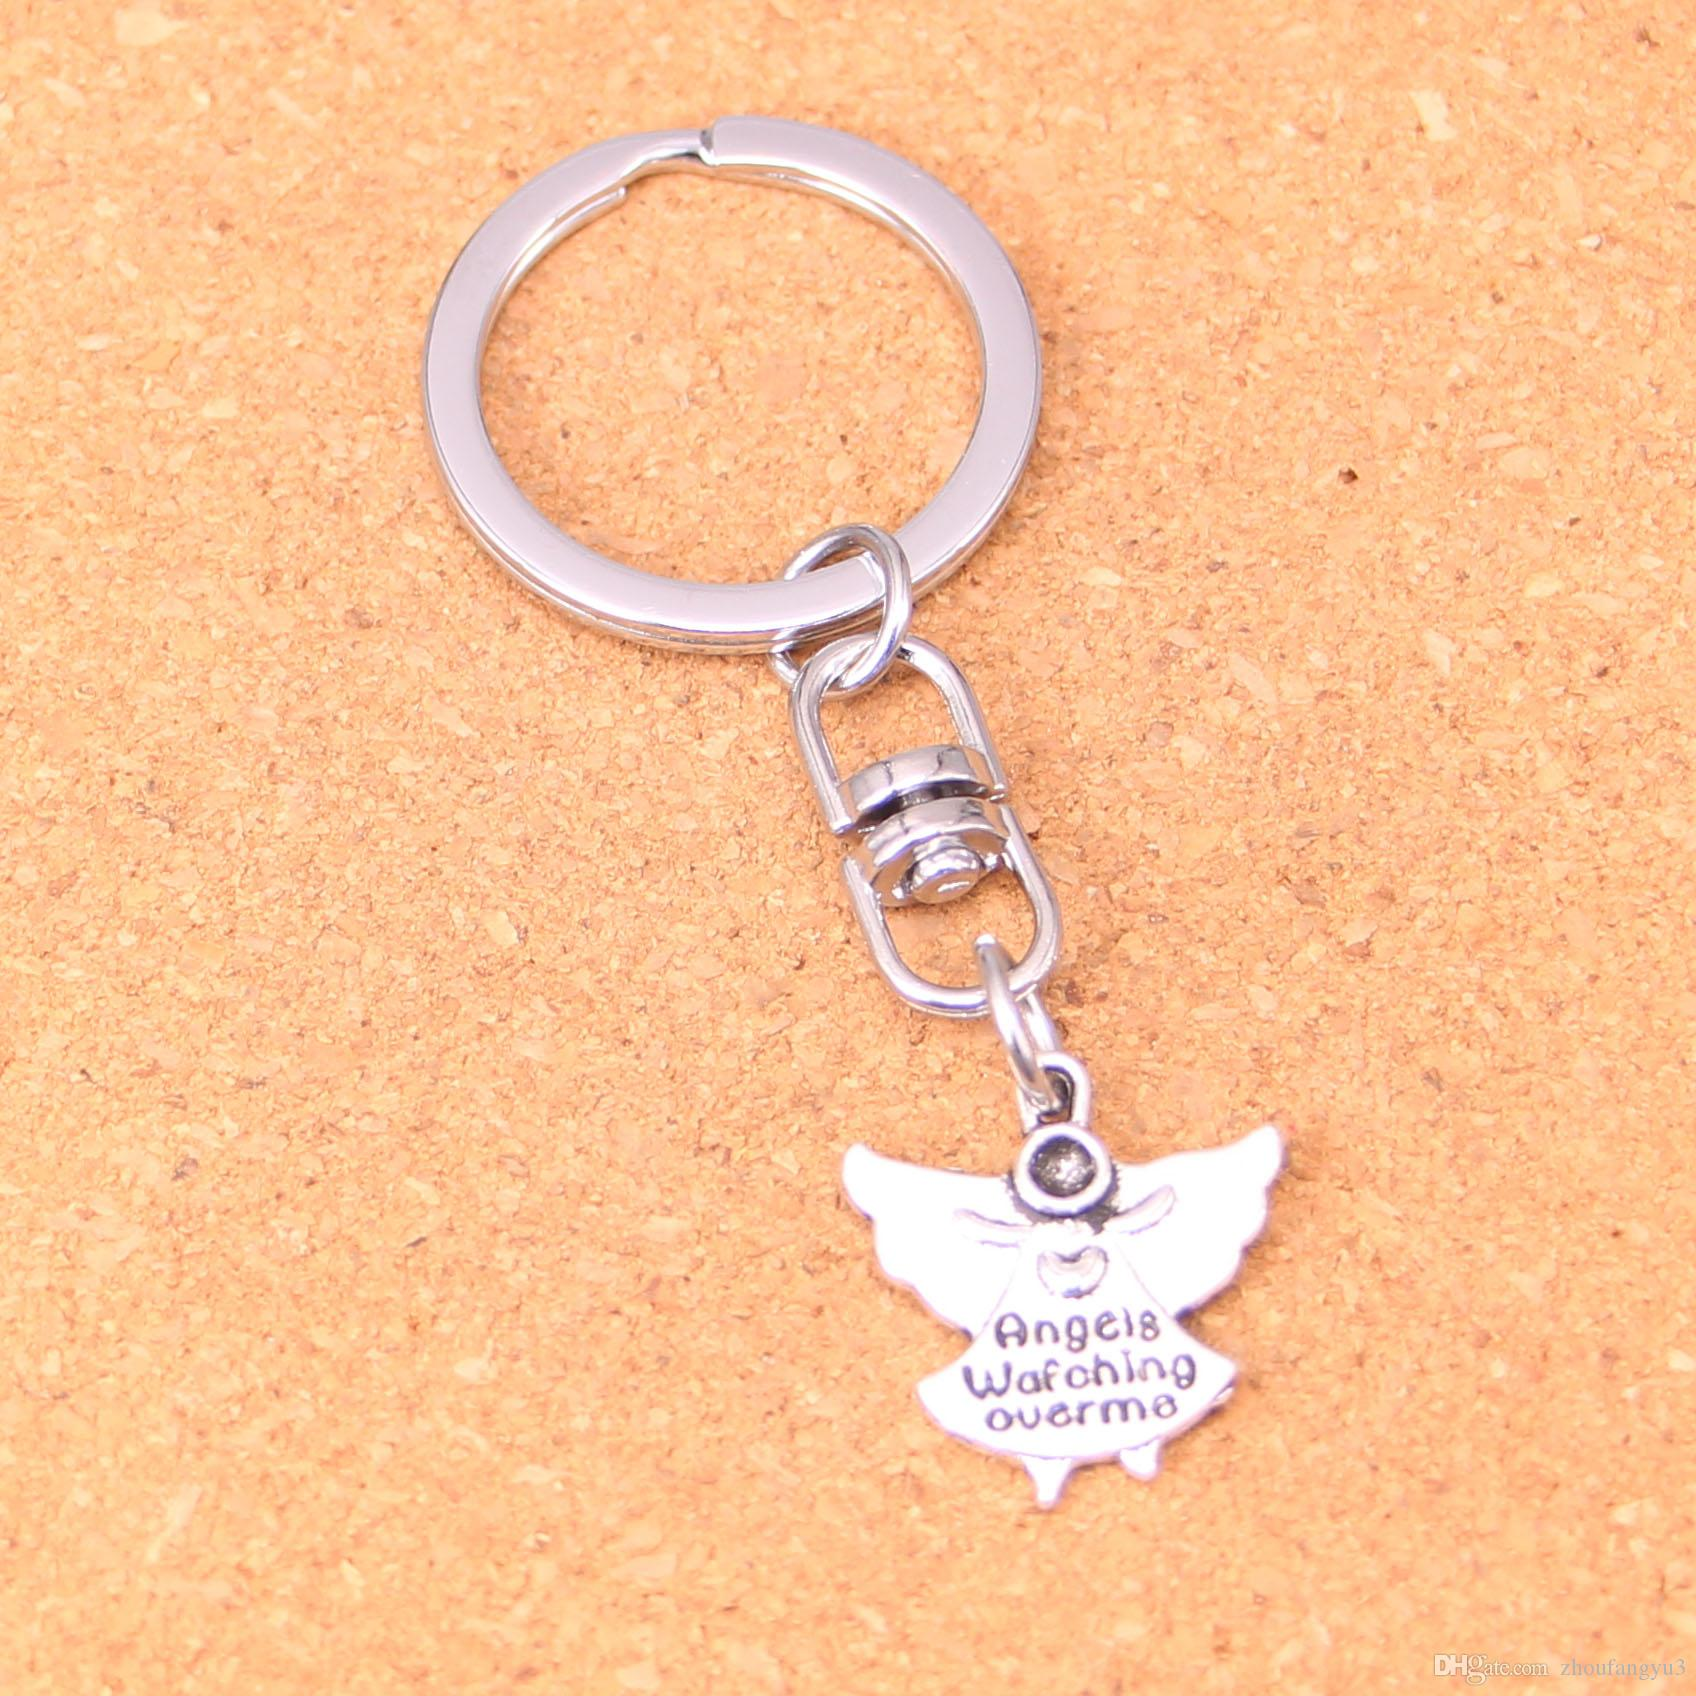 New Design Guardian Angel Watching Over Me Keychain Car Key Chain Key Ring  Silver Pendant For Man Women Gift UK 2019 From Zhoufangyu3 b32e46db6